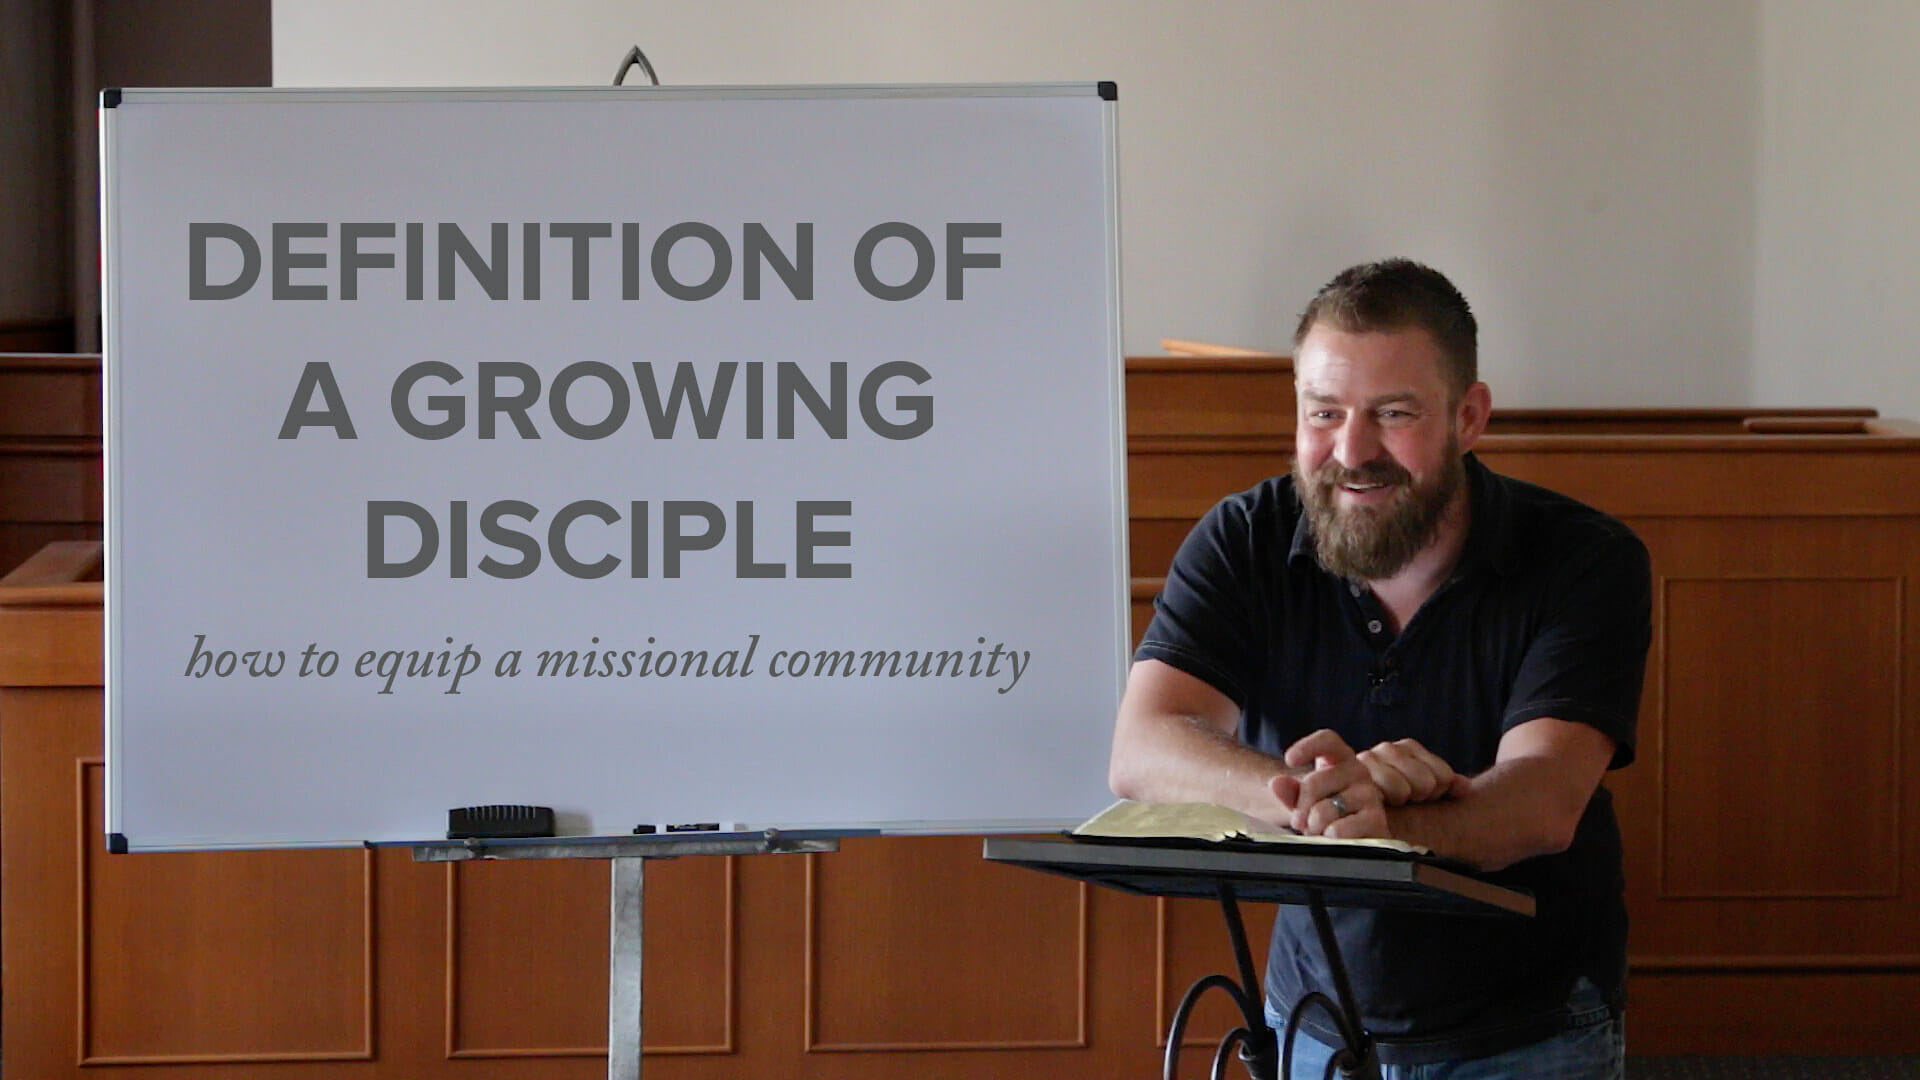 2---Definition-of-a-Growing-Disciple